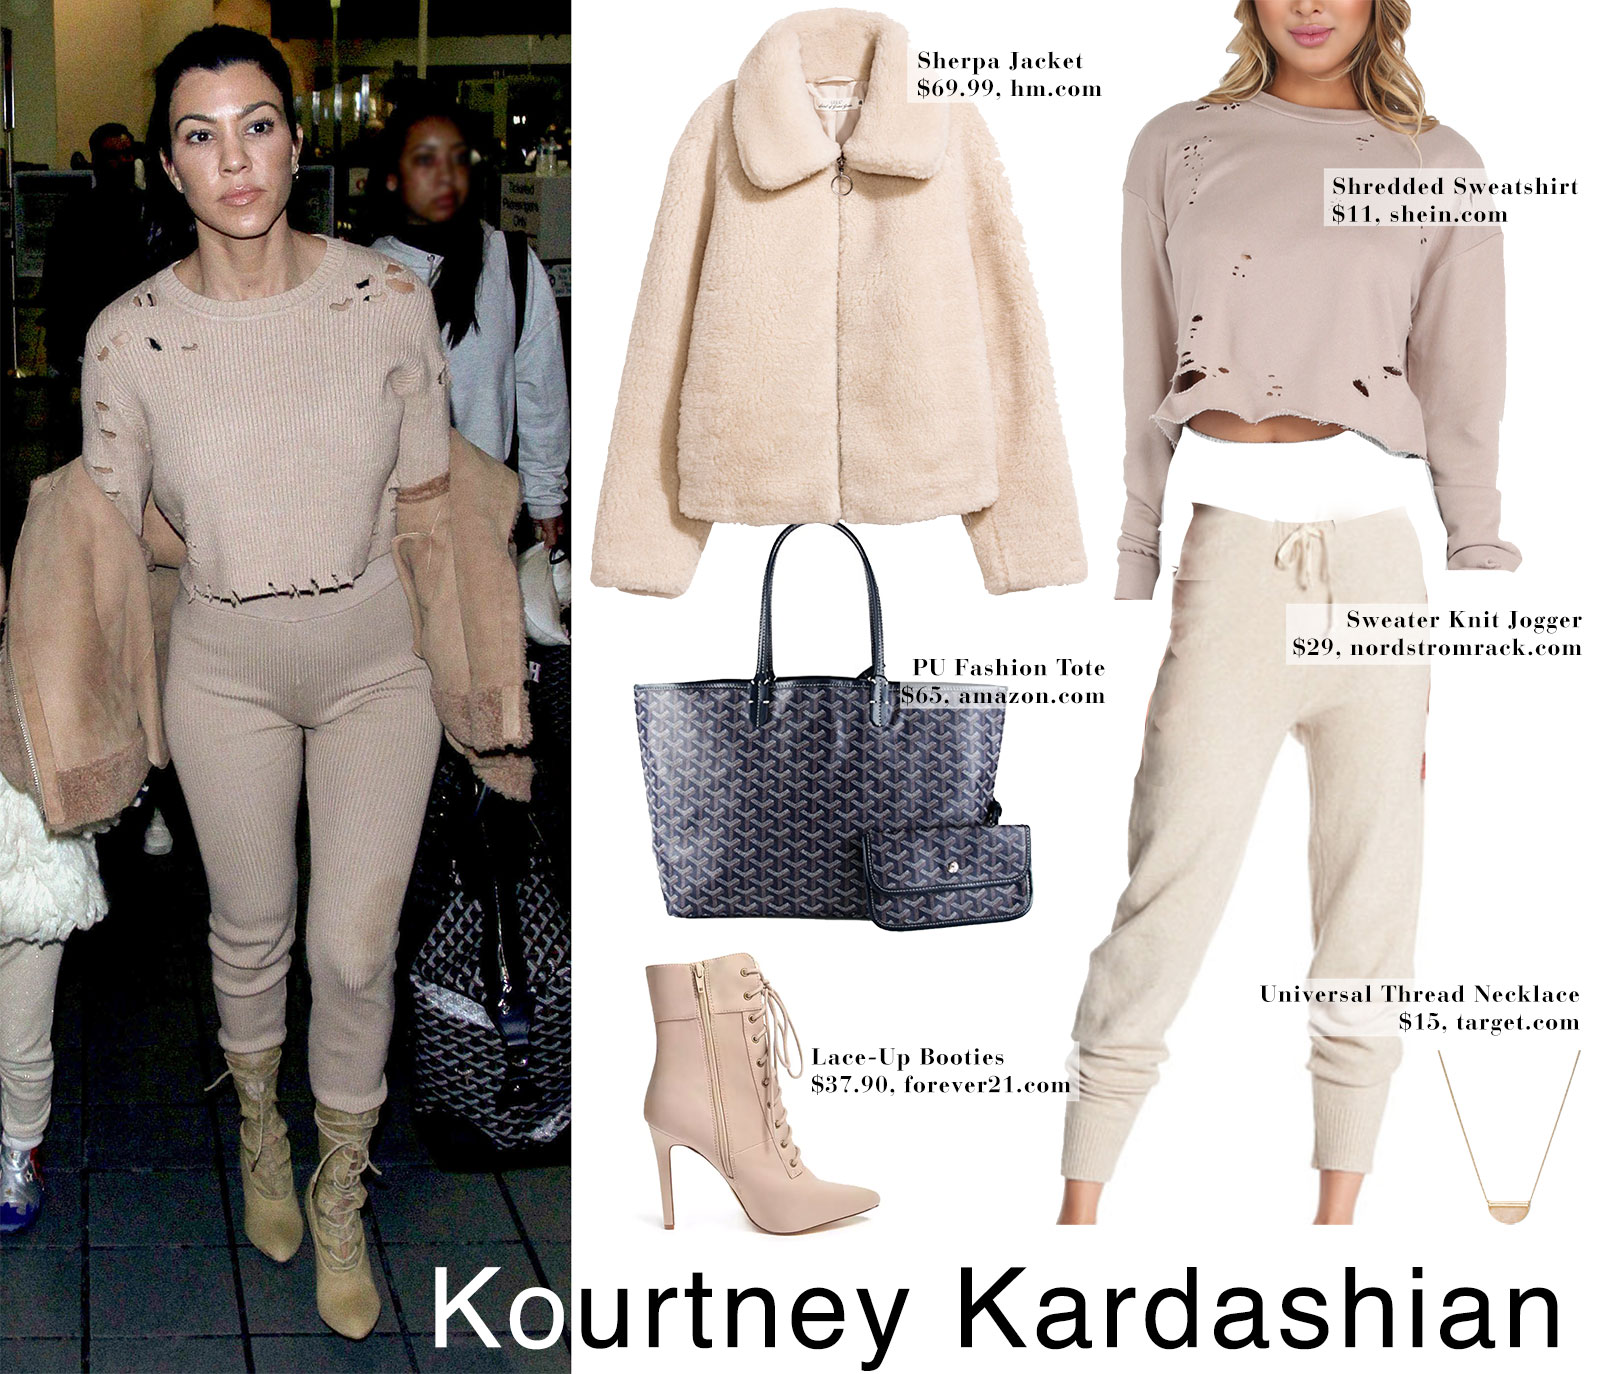 Kourtney Kardashian's beige fur jacket, shredded sweater, knit joggers and lace-up booties.